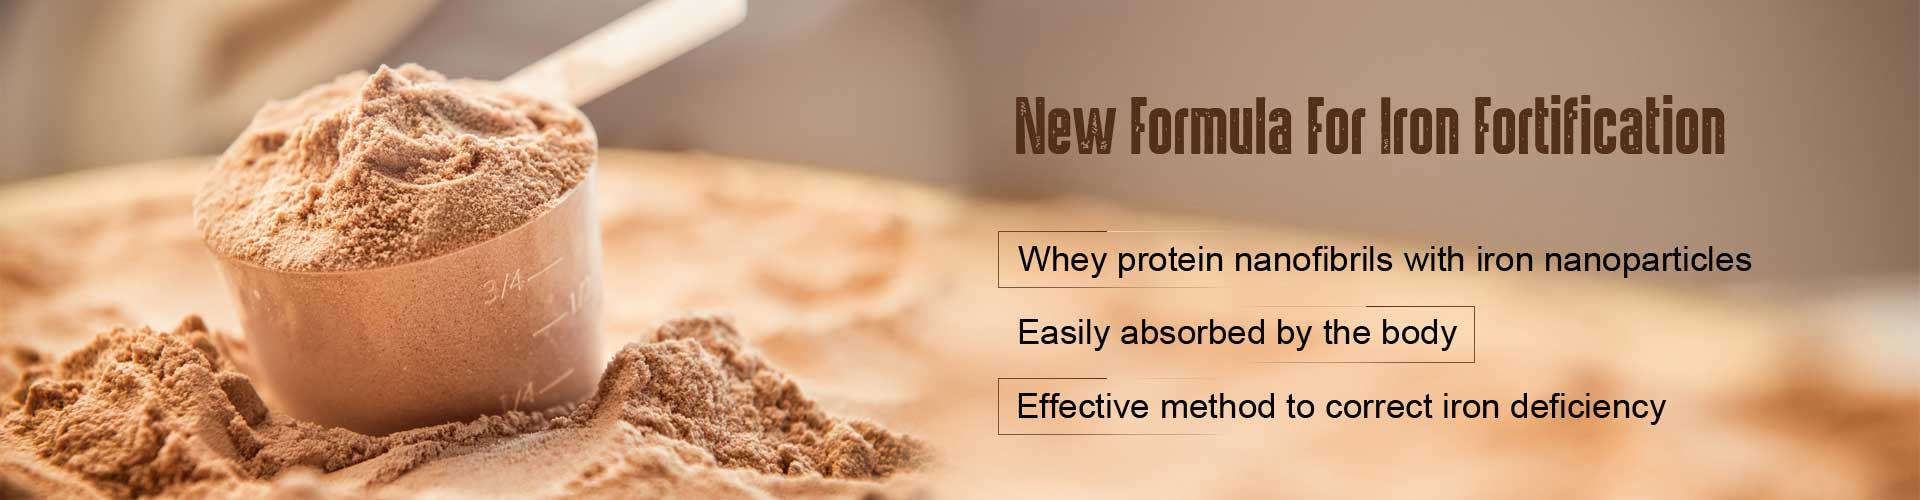 new formula for iron fortification - whey protein nano-fibrils with iron nano particles - easily absorbed by the body - effective method to correct iron deficiency